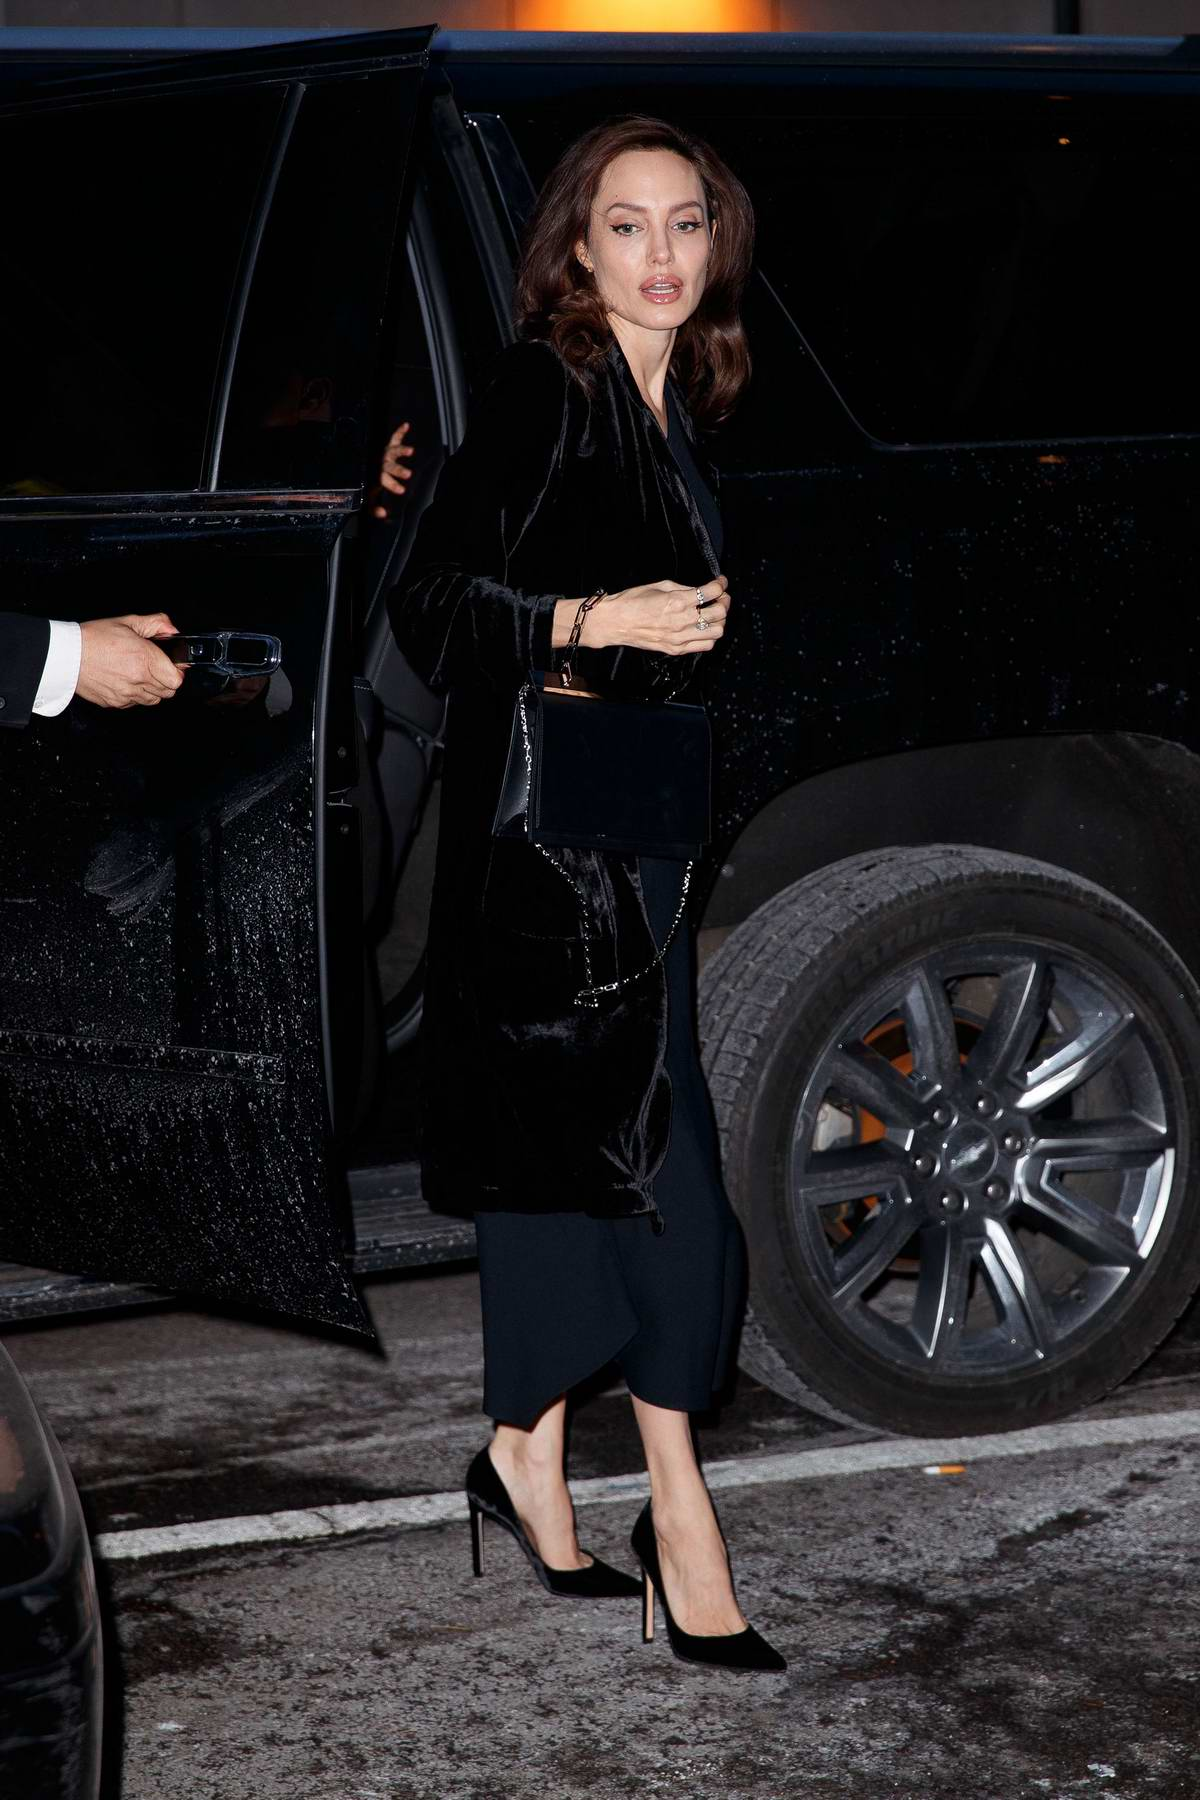 Angelina Jolie arrives at an office building in New York City